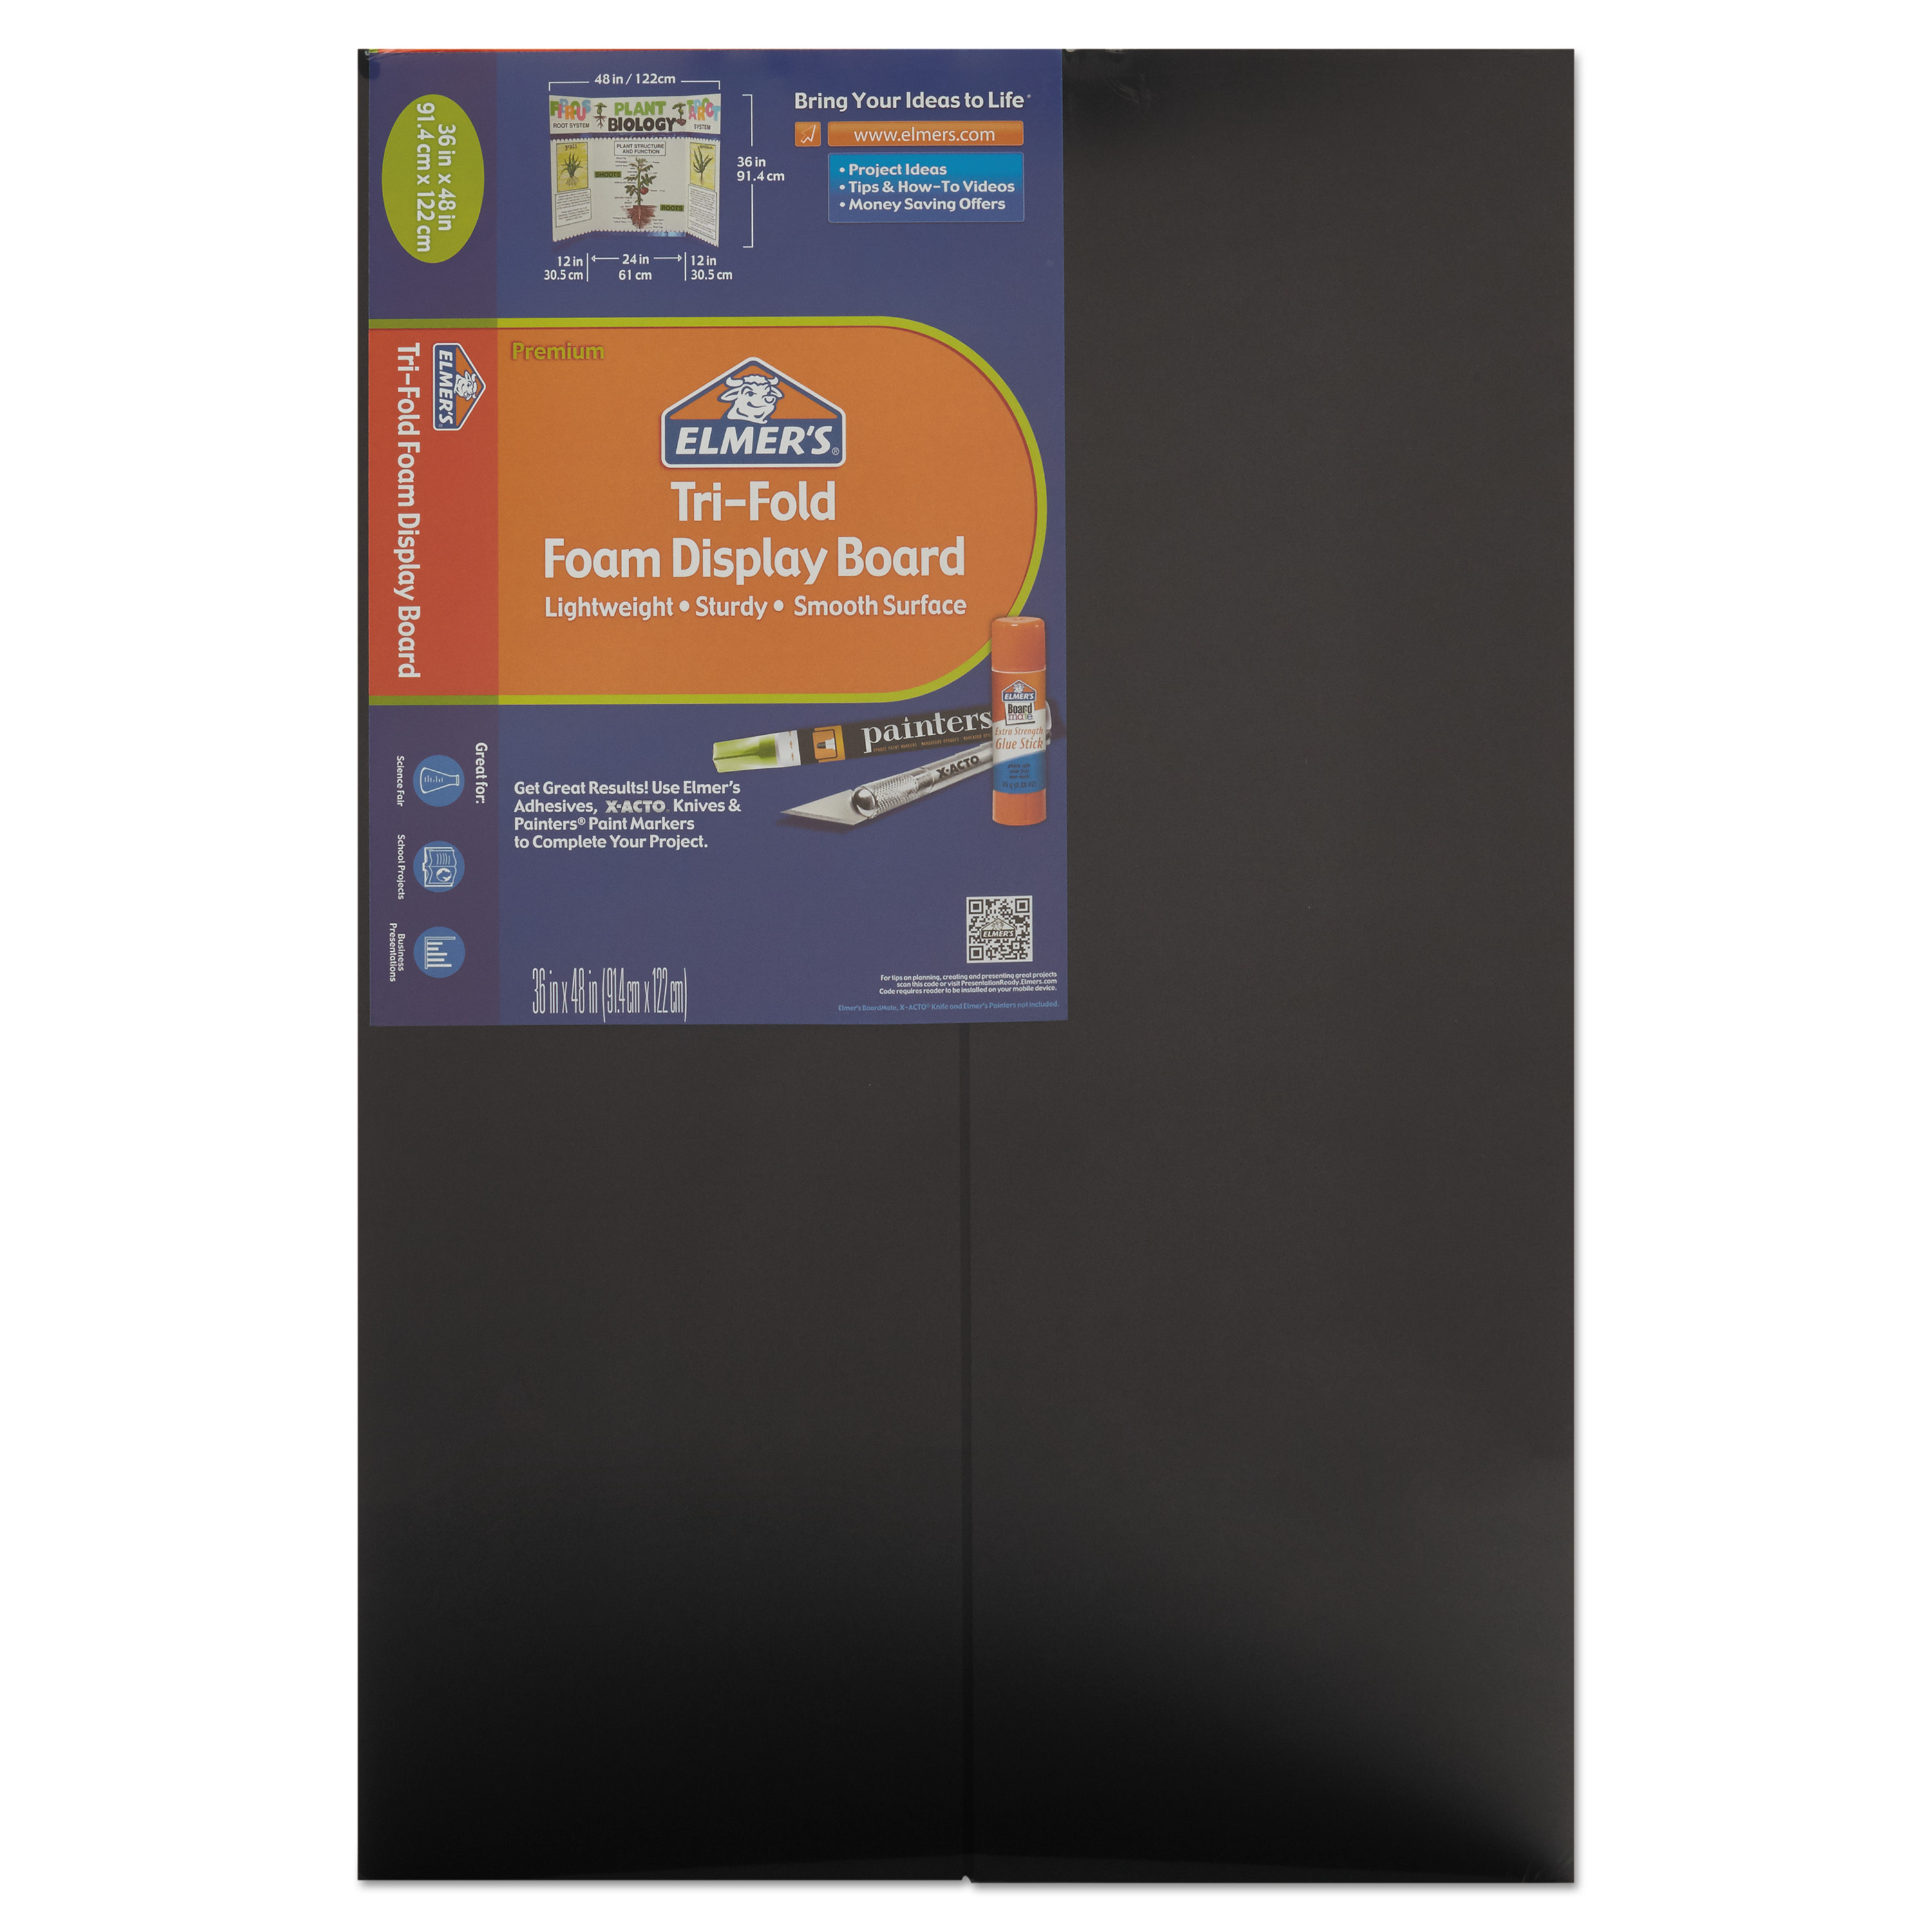 "Elmer's Premium Foam Tri-Fold Display Board, 3/16"" Thick, 36"" x 48"", Black, 12-Pack"